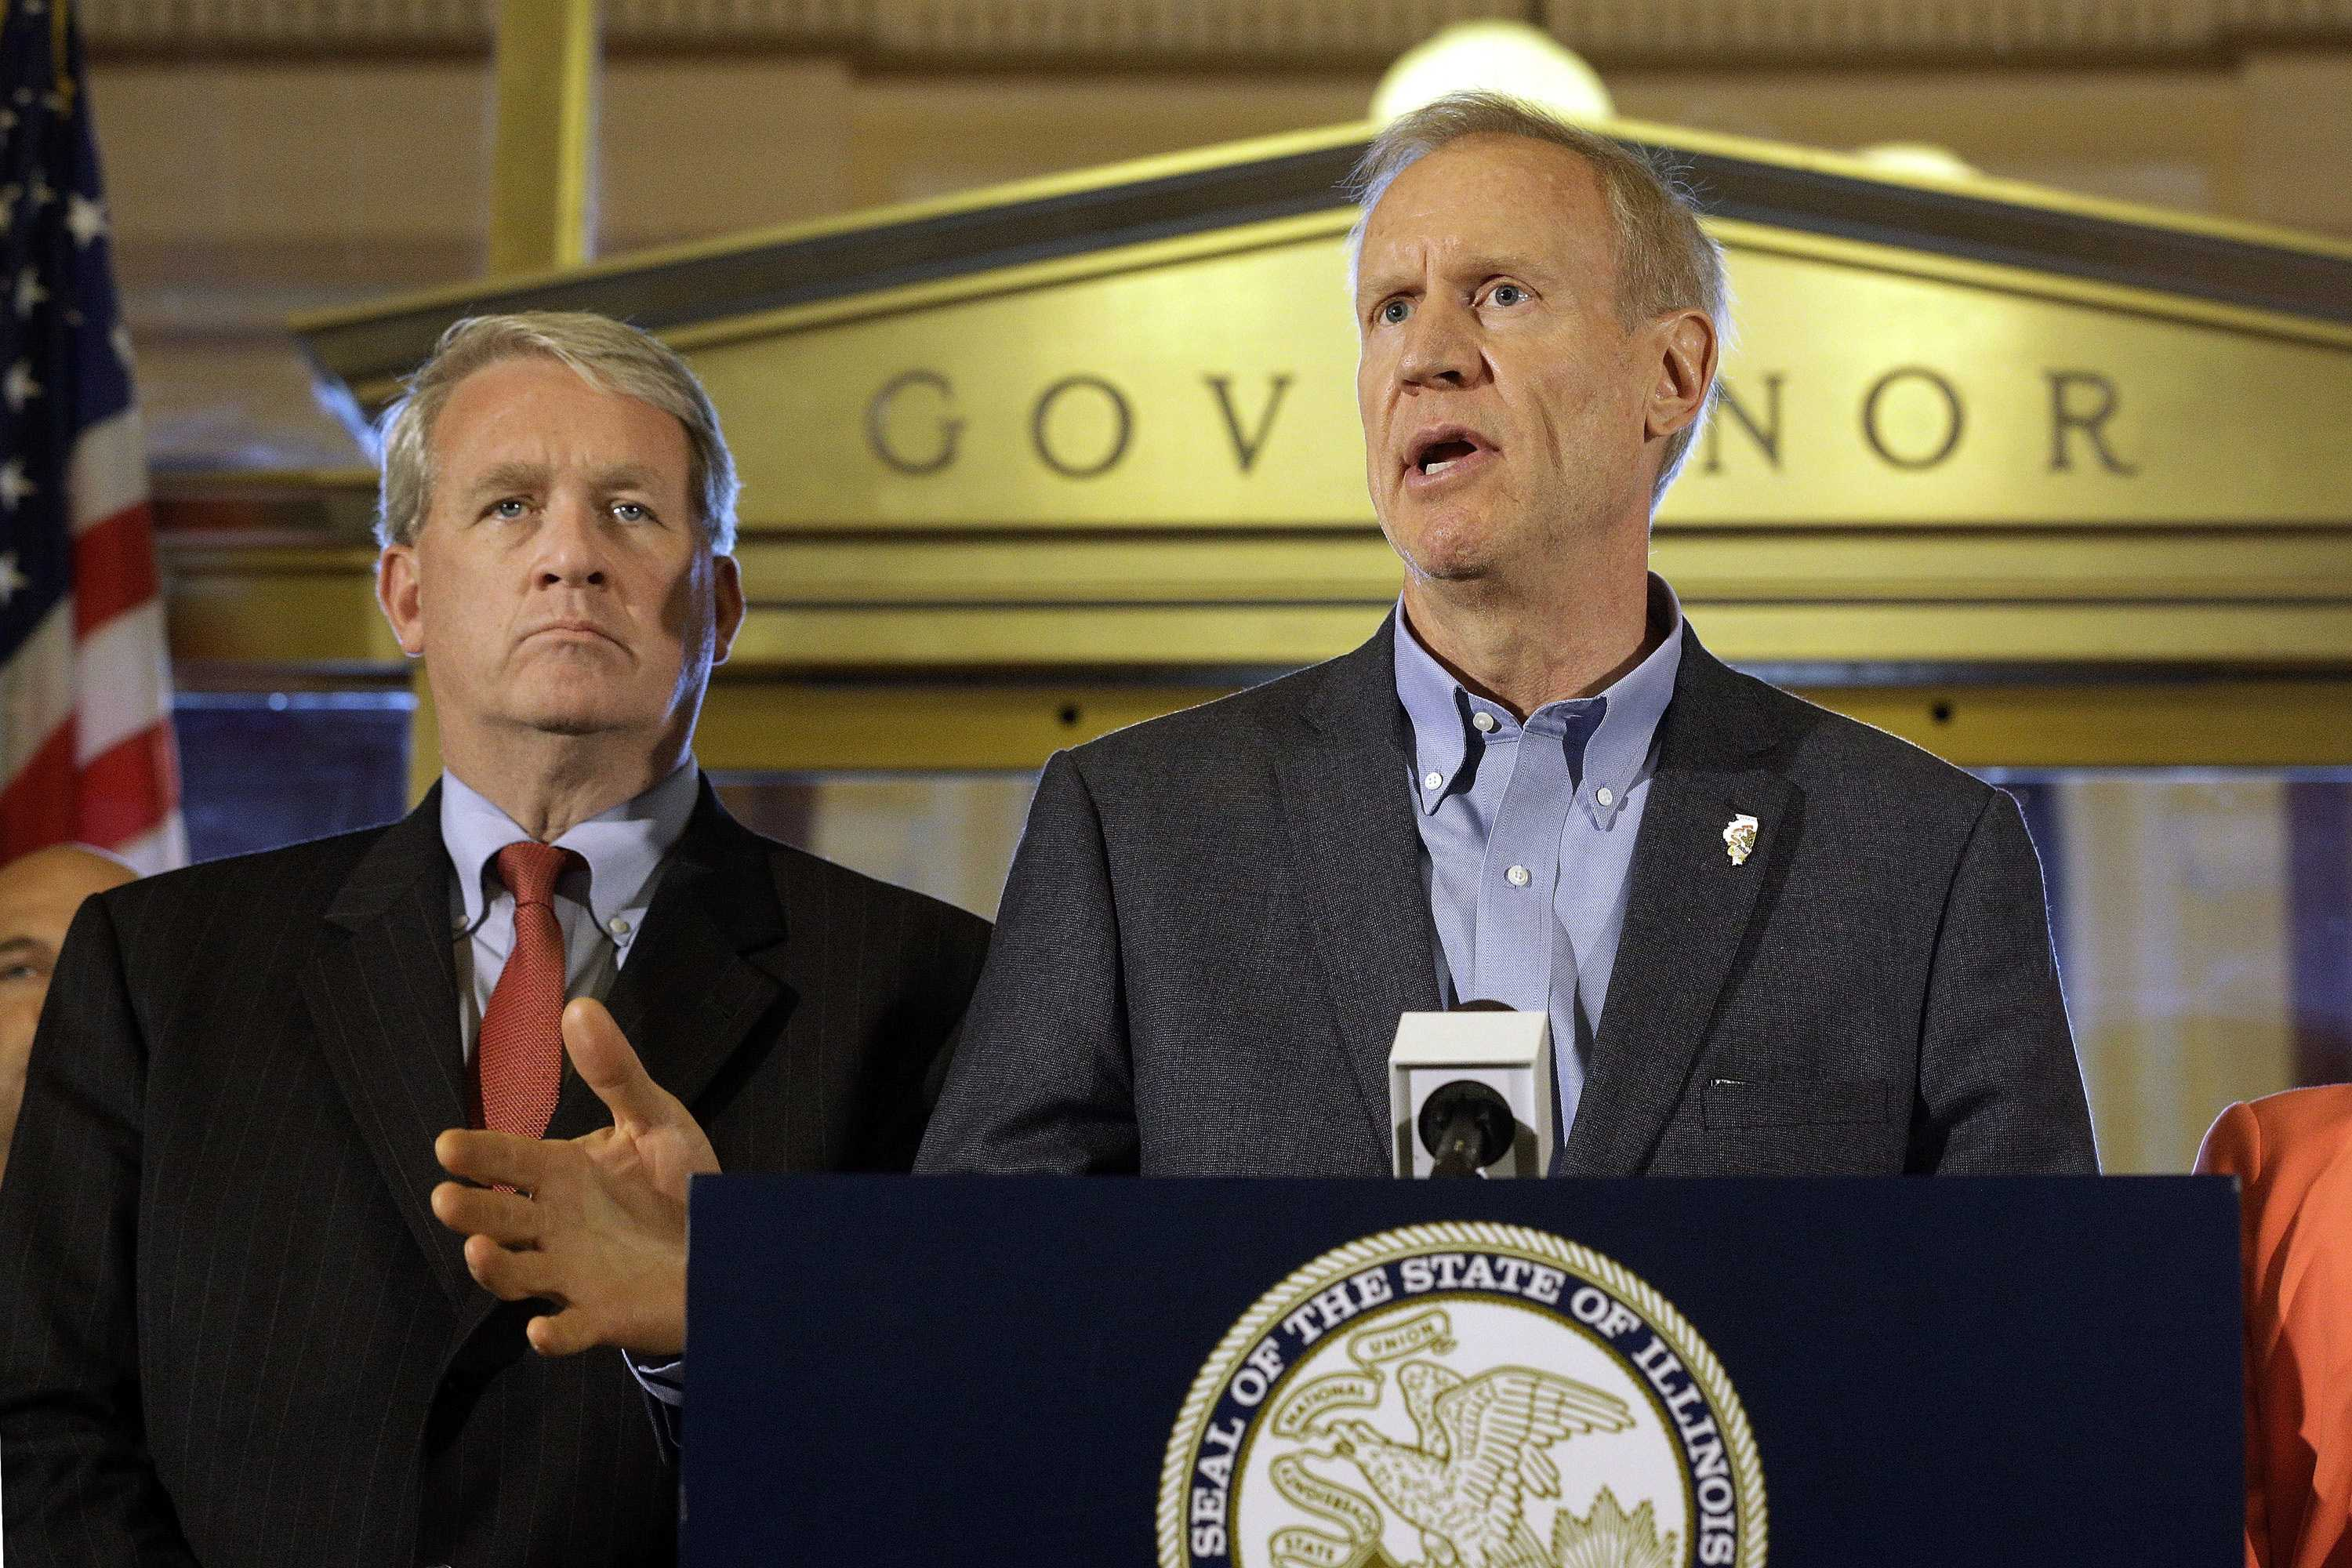 Illinois Gov. Bruce Rauner speaks to reporters in front of his office at the Illinois State Capitol June 30 in Springfield, Illinois. Lawmakers were moved to compromise on a stopgap budget after a year-and-a-half stalemate by a powerful force: a high-stakes November election and a voting public one legislator described as near revolt. Rauner signed legislation Thursday evening to keep state government operating for six months and schools open for another year. The plan allows the politicians to campaign without the threat of shuttered schools. Looking on is Illinois House Minority Leader Jim Durkin, R-Western Springs. (AP Photo/Seth Perlman)